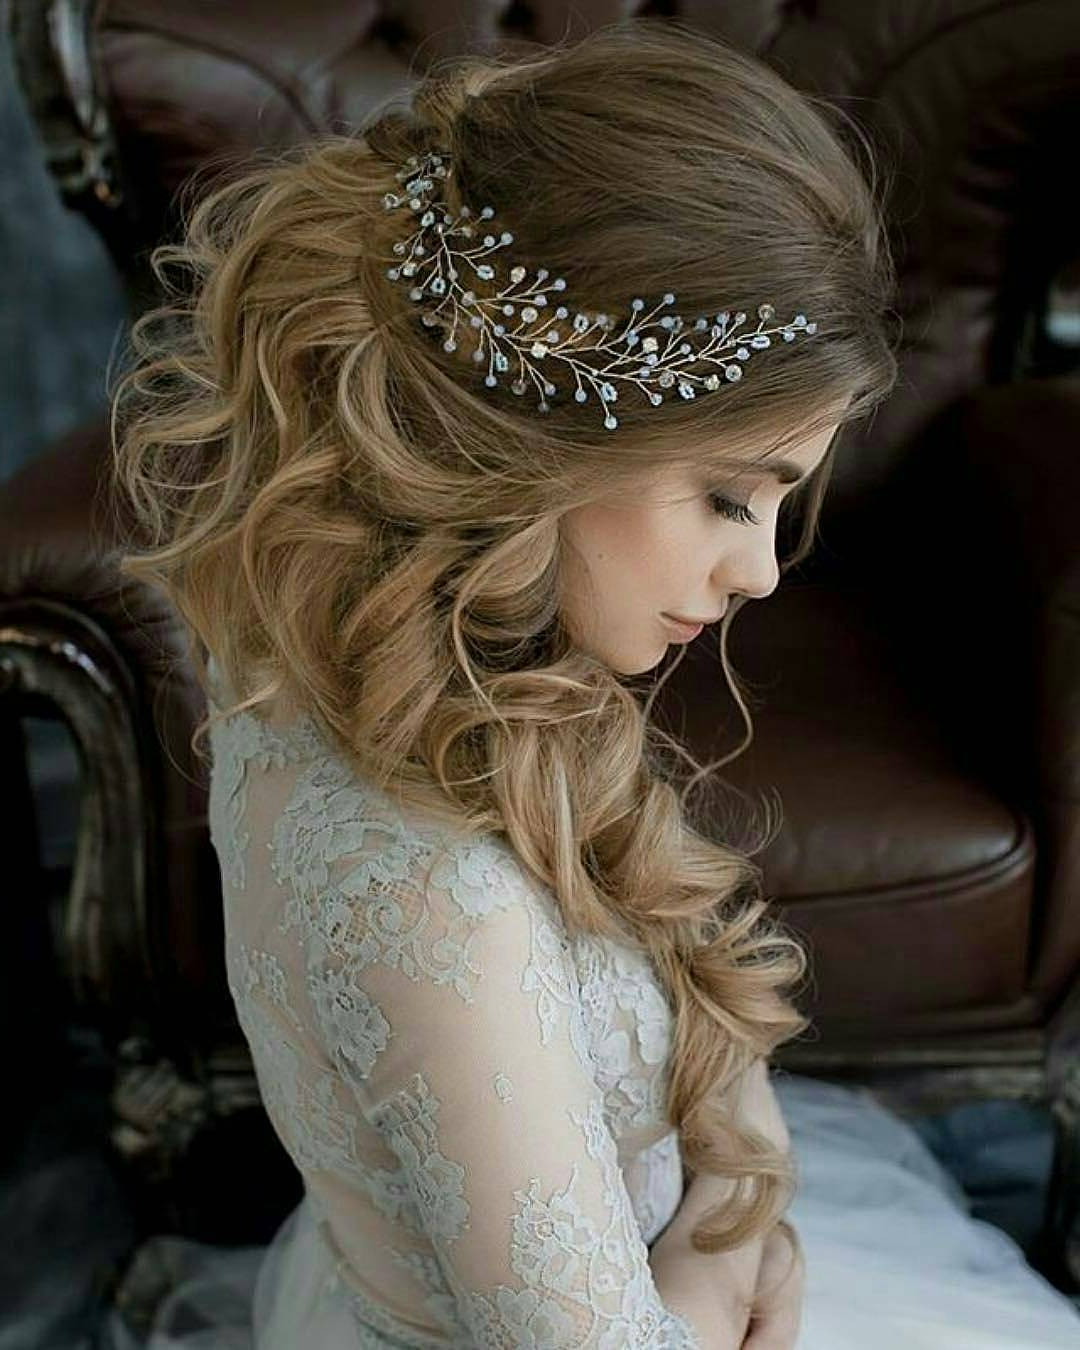 10 Lavish Wedding Hairstyles For Long Hair – Wedding Hairstyle Ideas With Regard To Well Known Relaxed And Regal Hairstyles For Wedding (View 5 of 20)